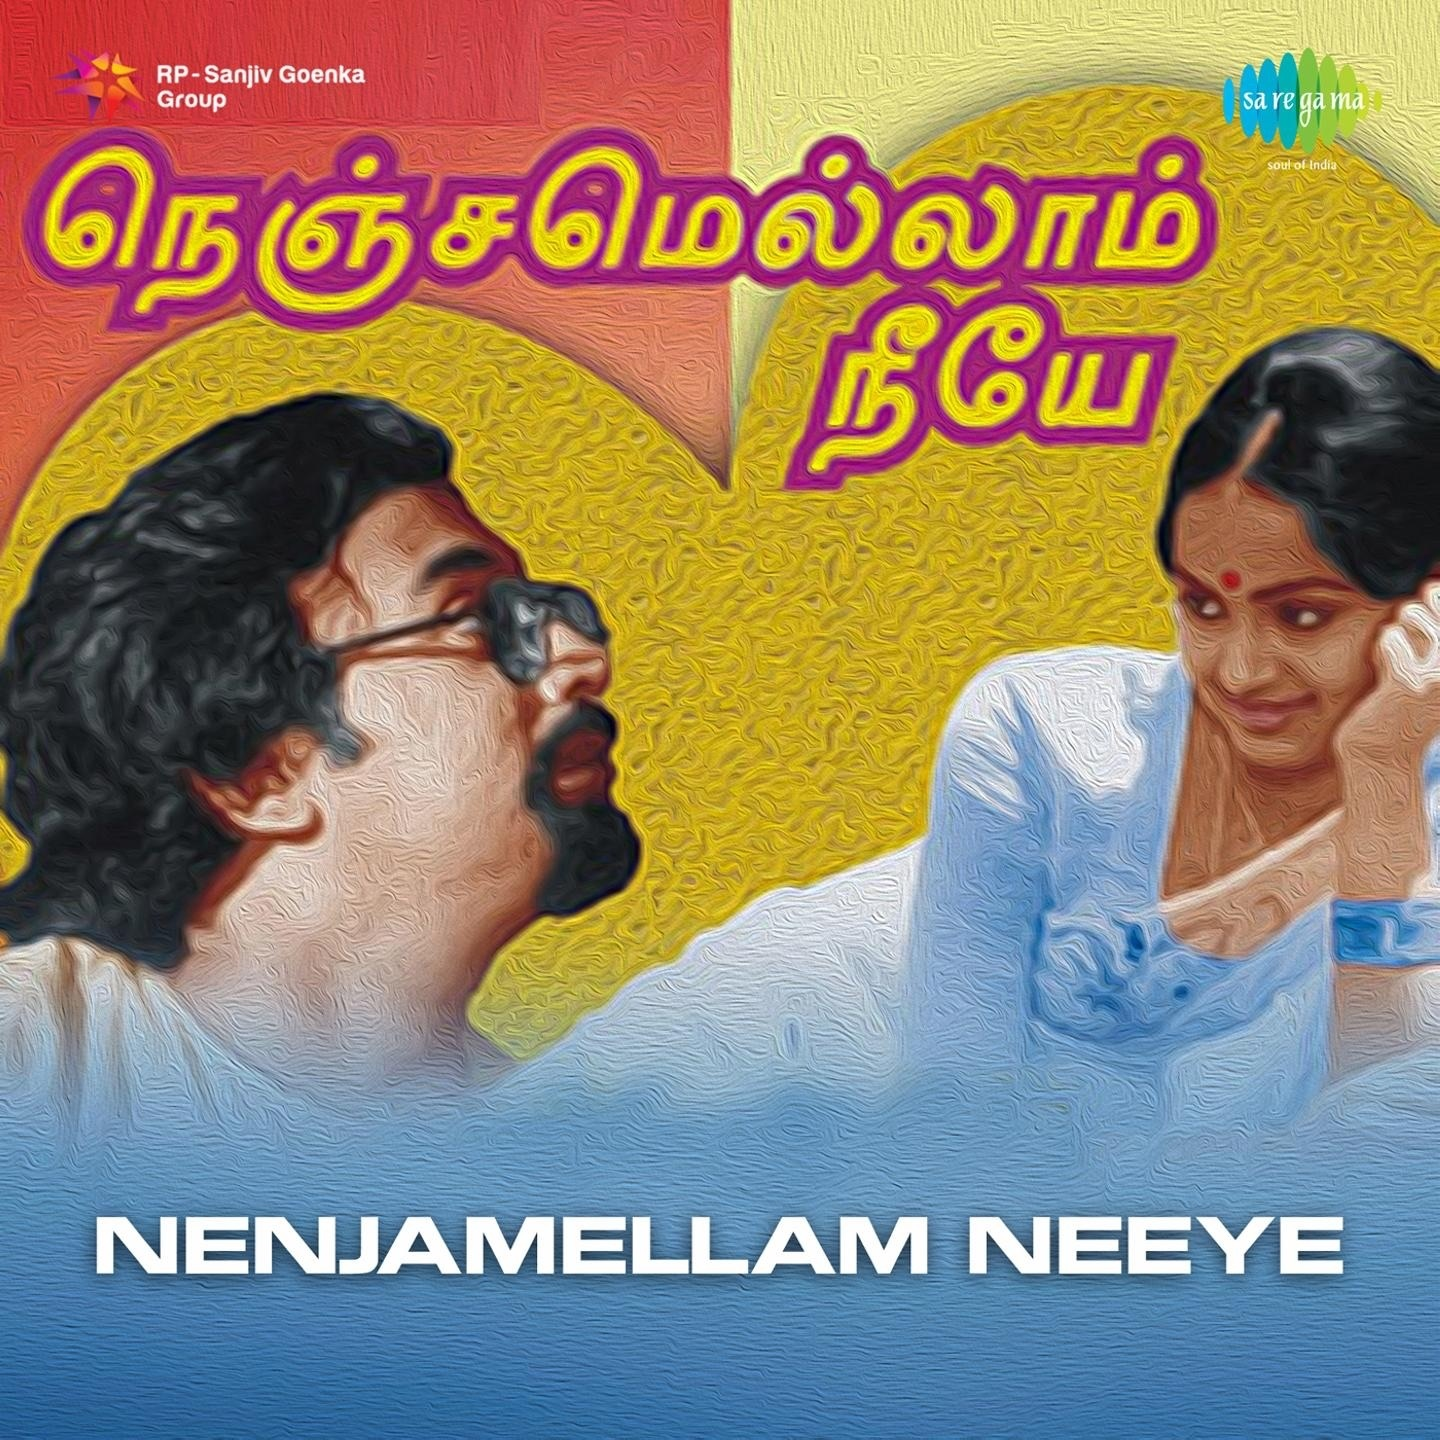 Nenjamellam neeye tamil mp3 songs free download \ adoption-half. Cf.